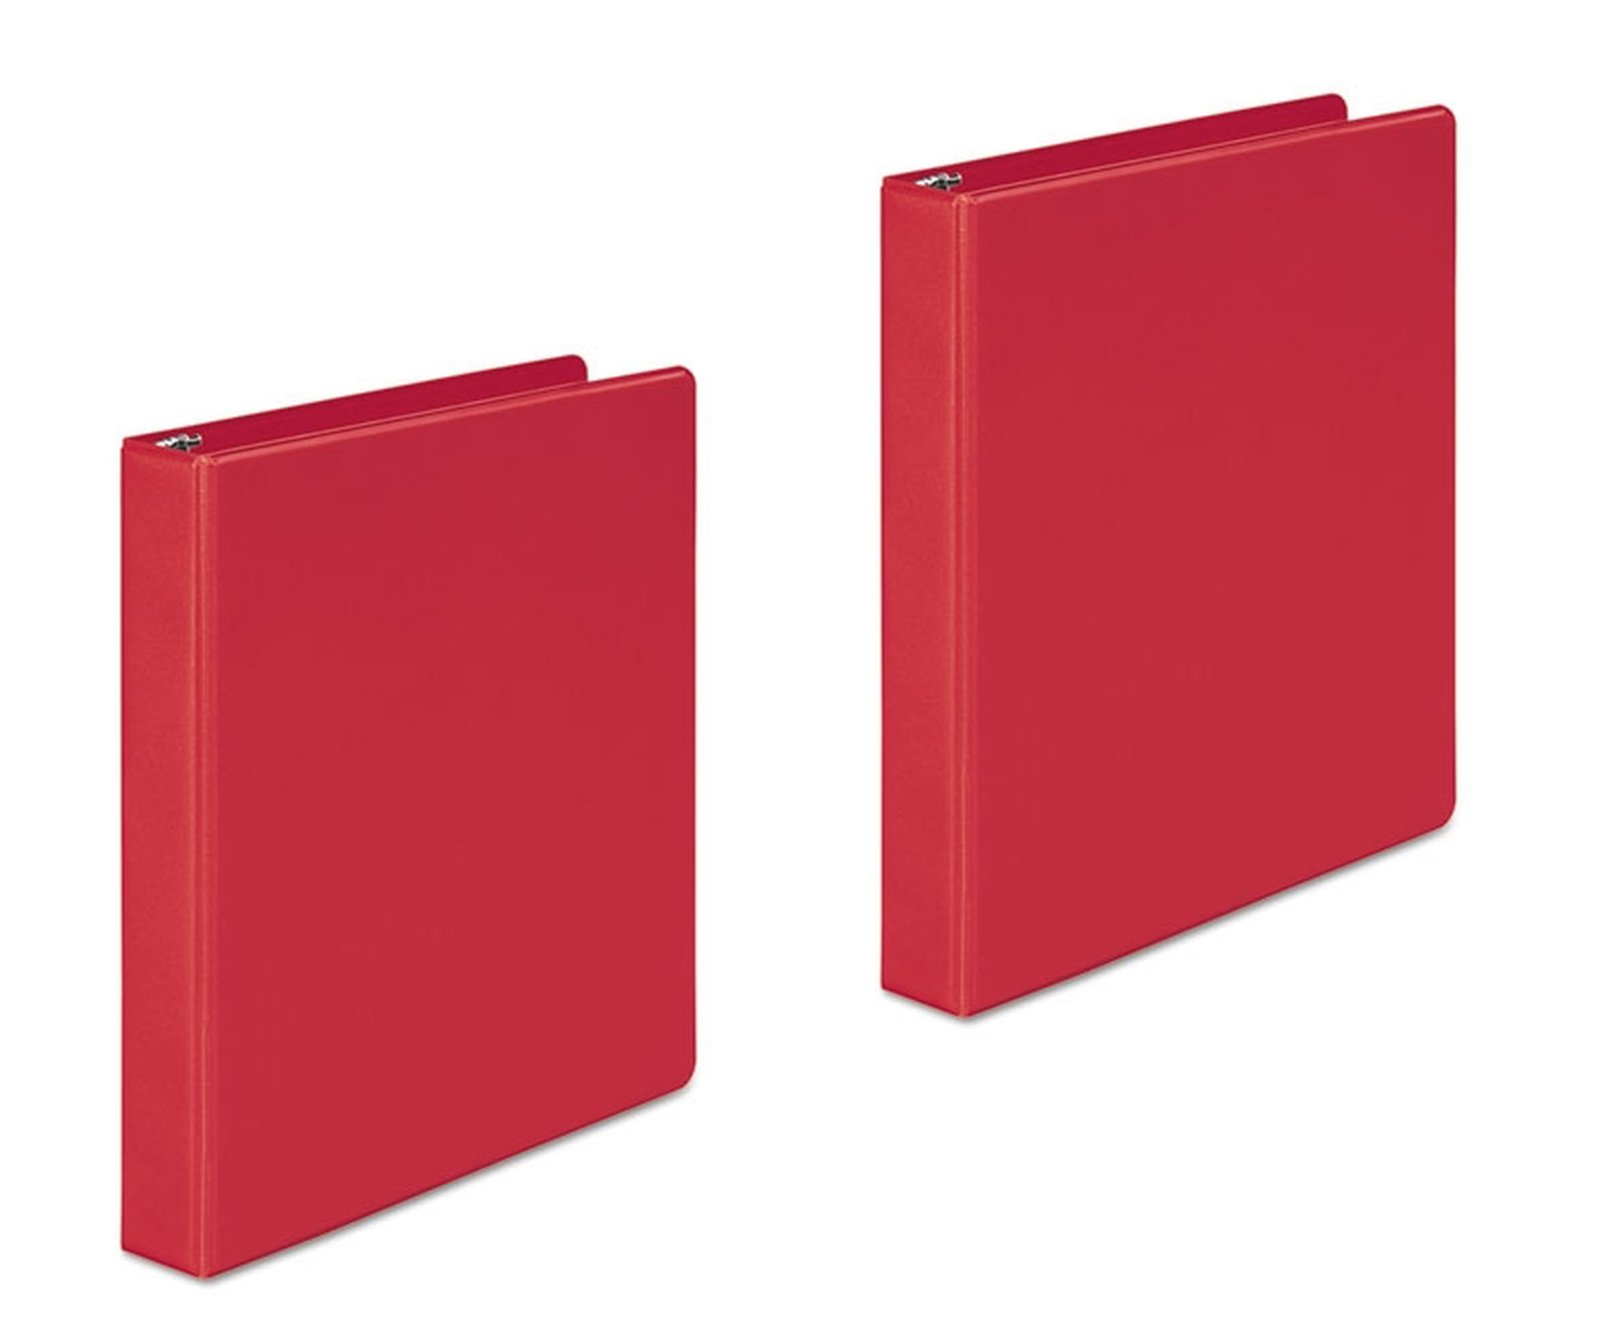 View Front Binders 1 inch 3 Ring 2 Inside Pockets Presentation Folders (2 Pack))